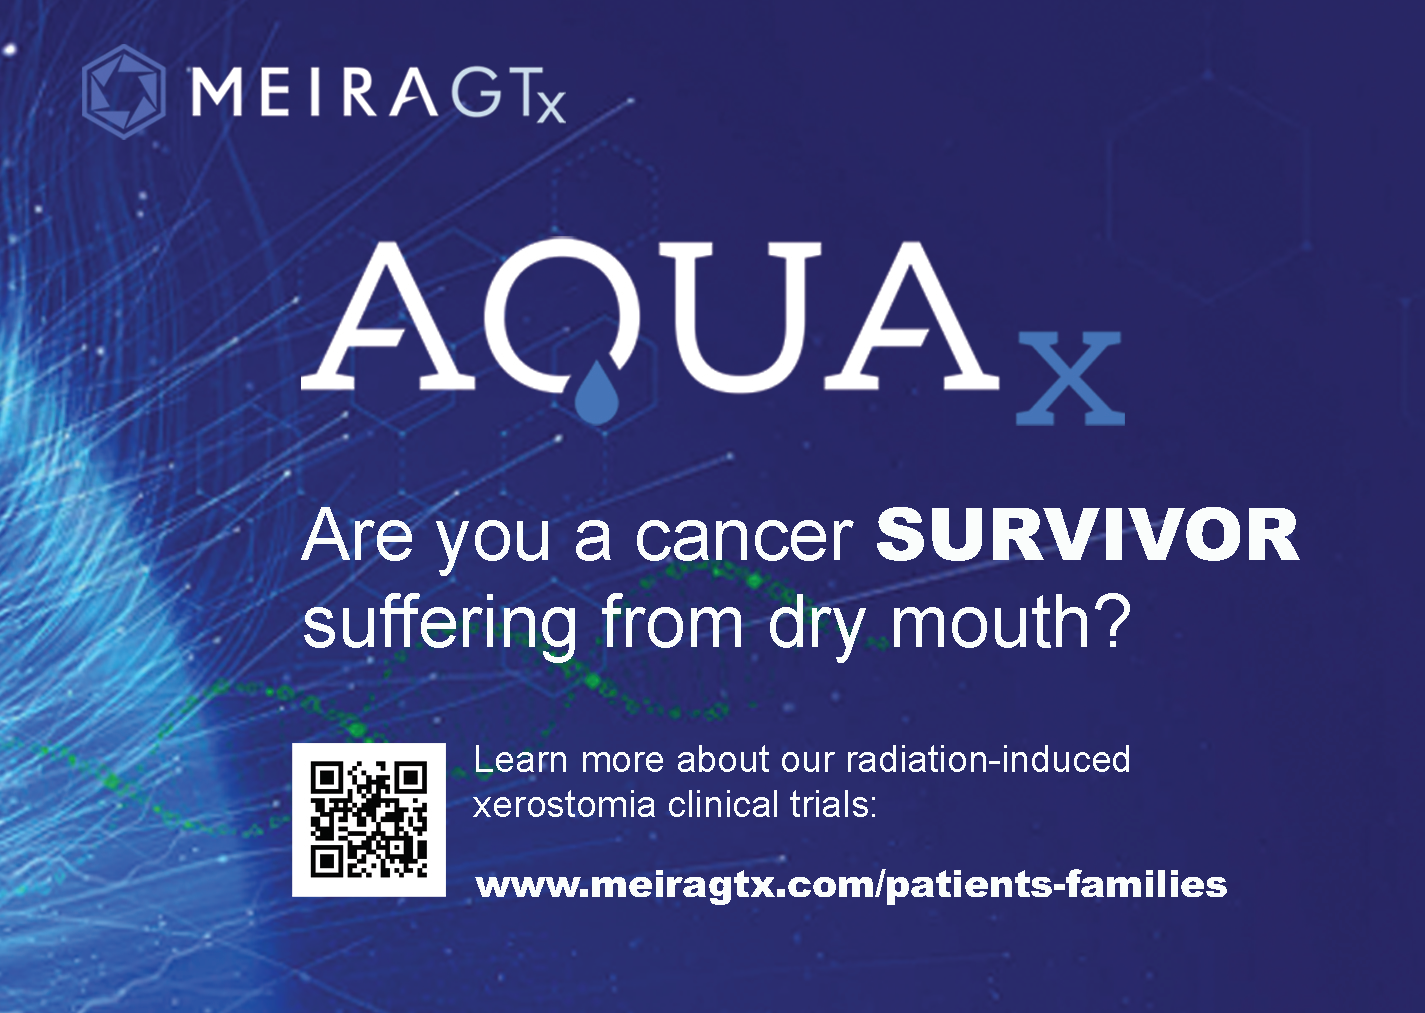 Image for MeriaGTx radiation-induced xerostomia clinical trial